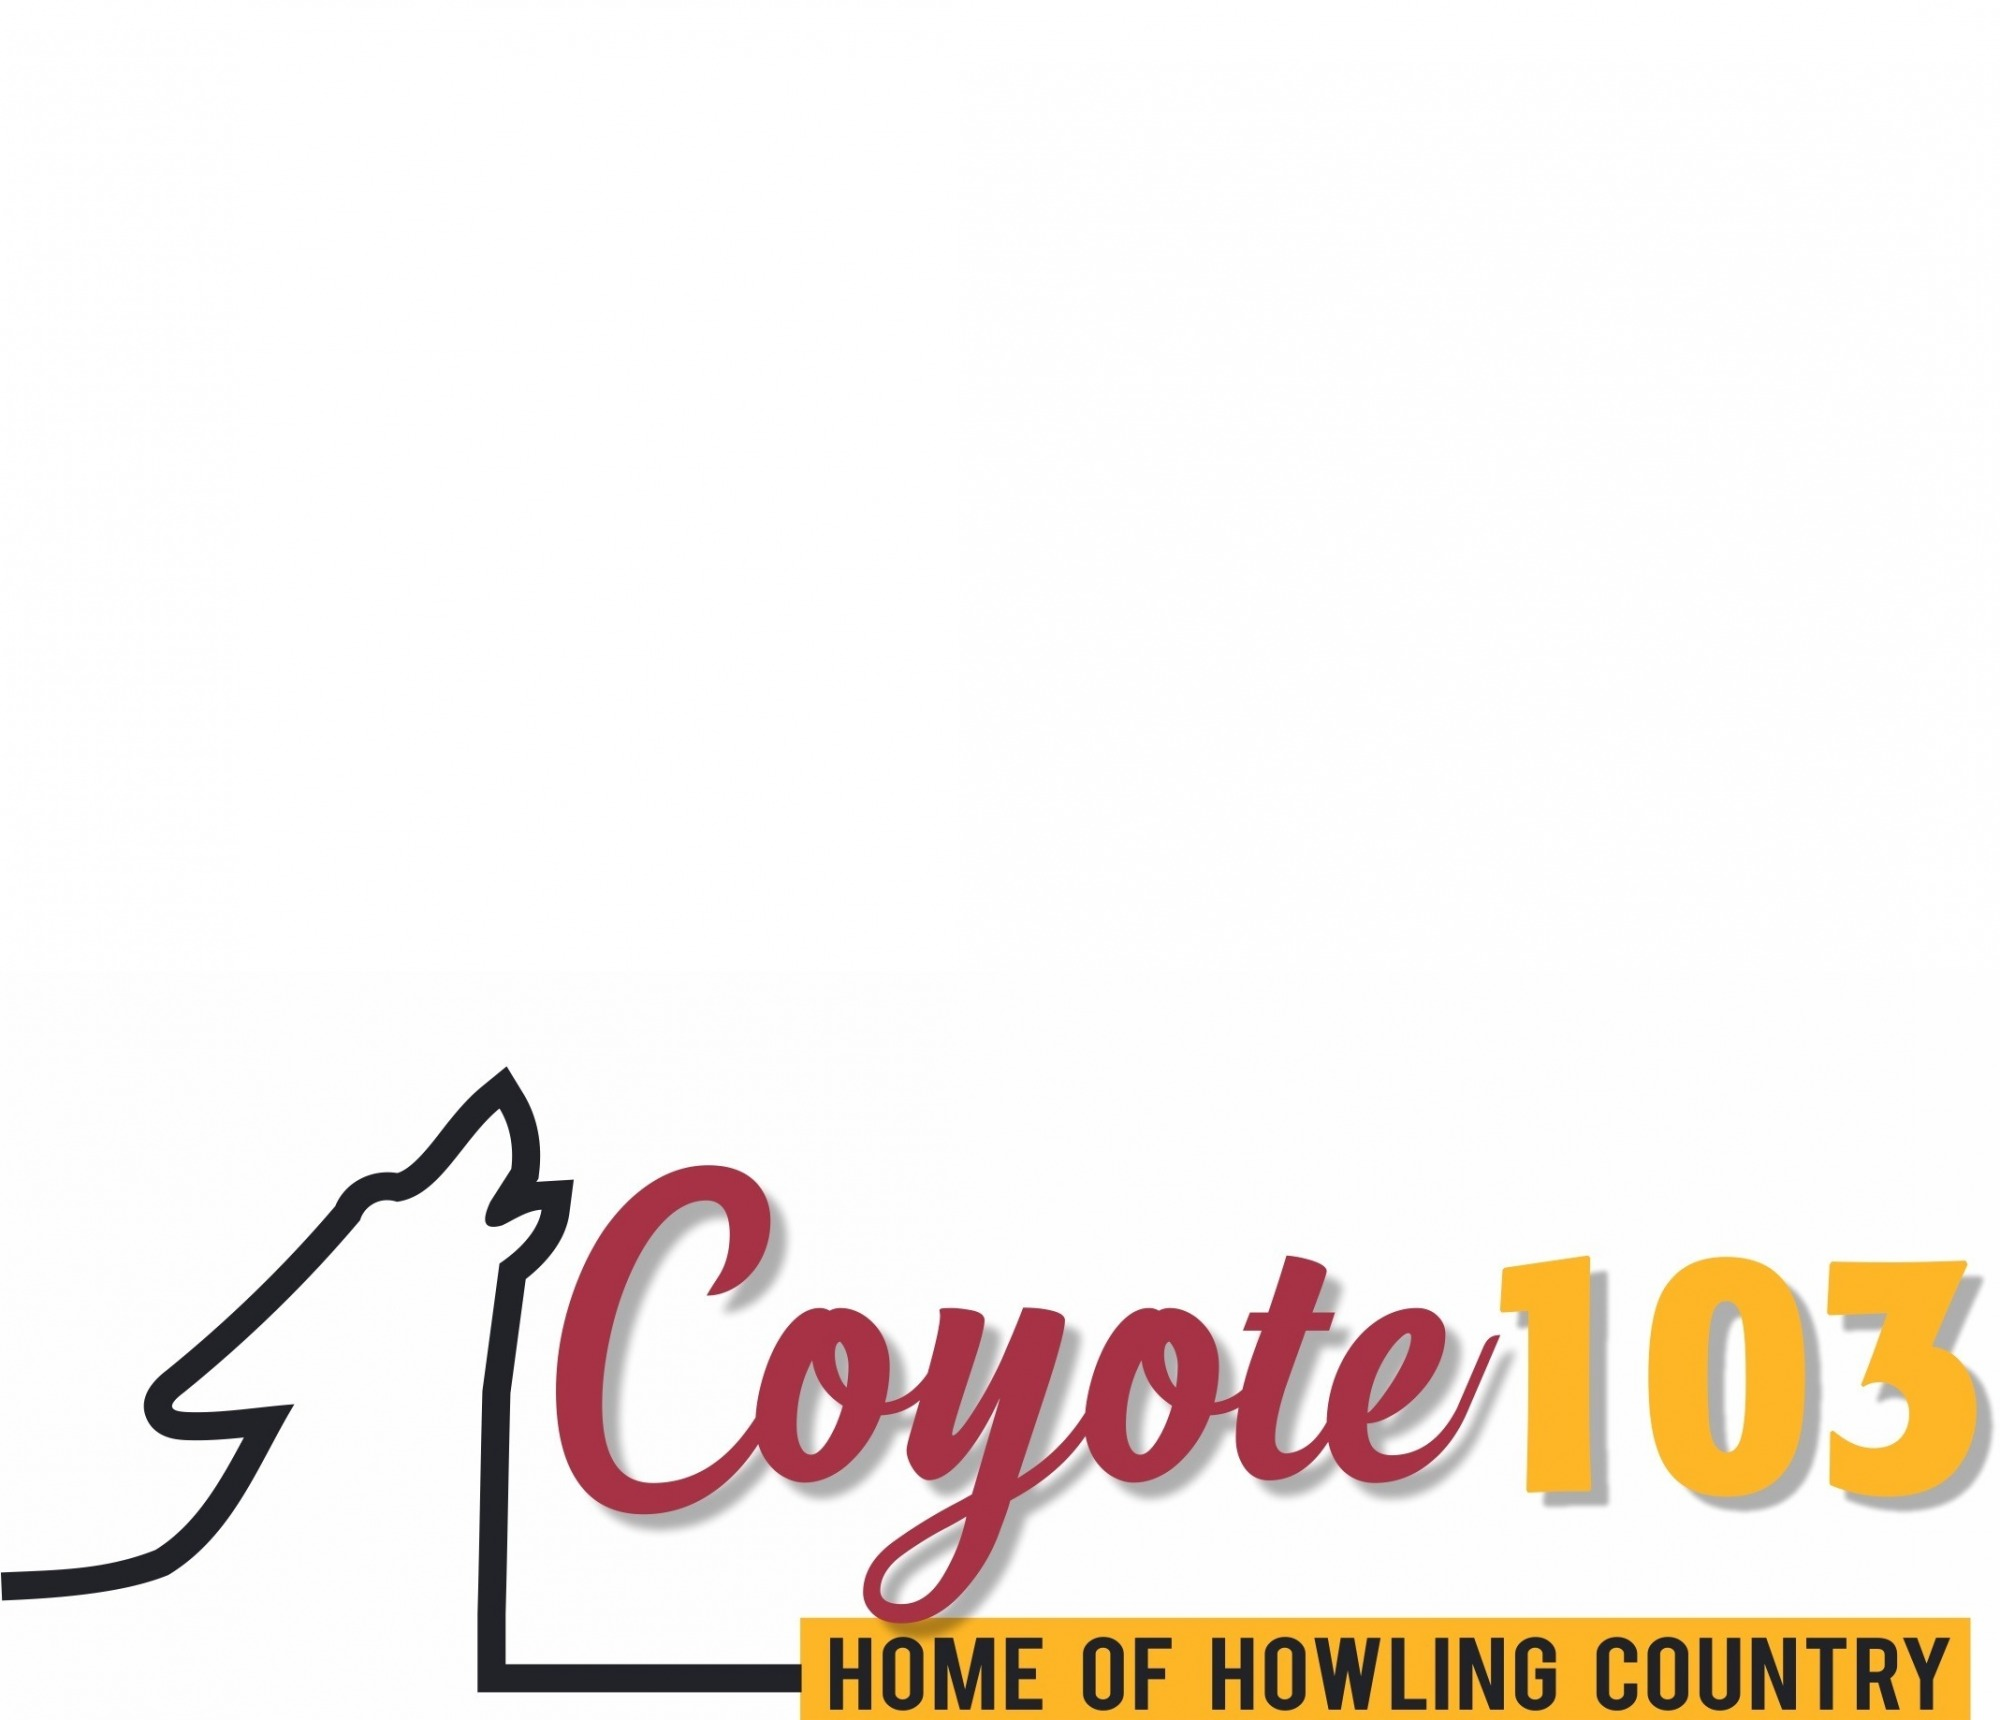 gallery/coyote 103 designs ods   logo